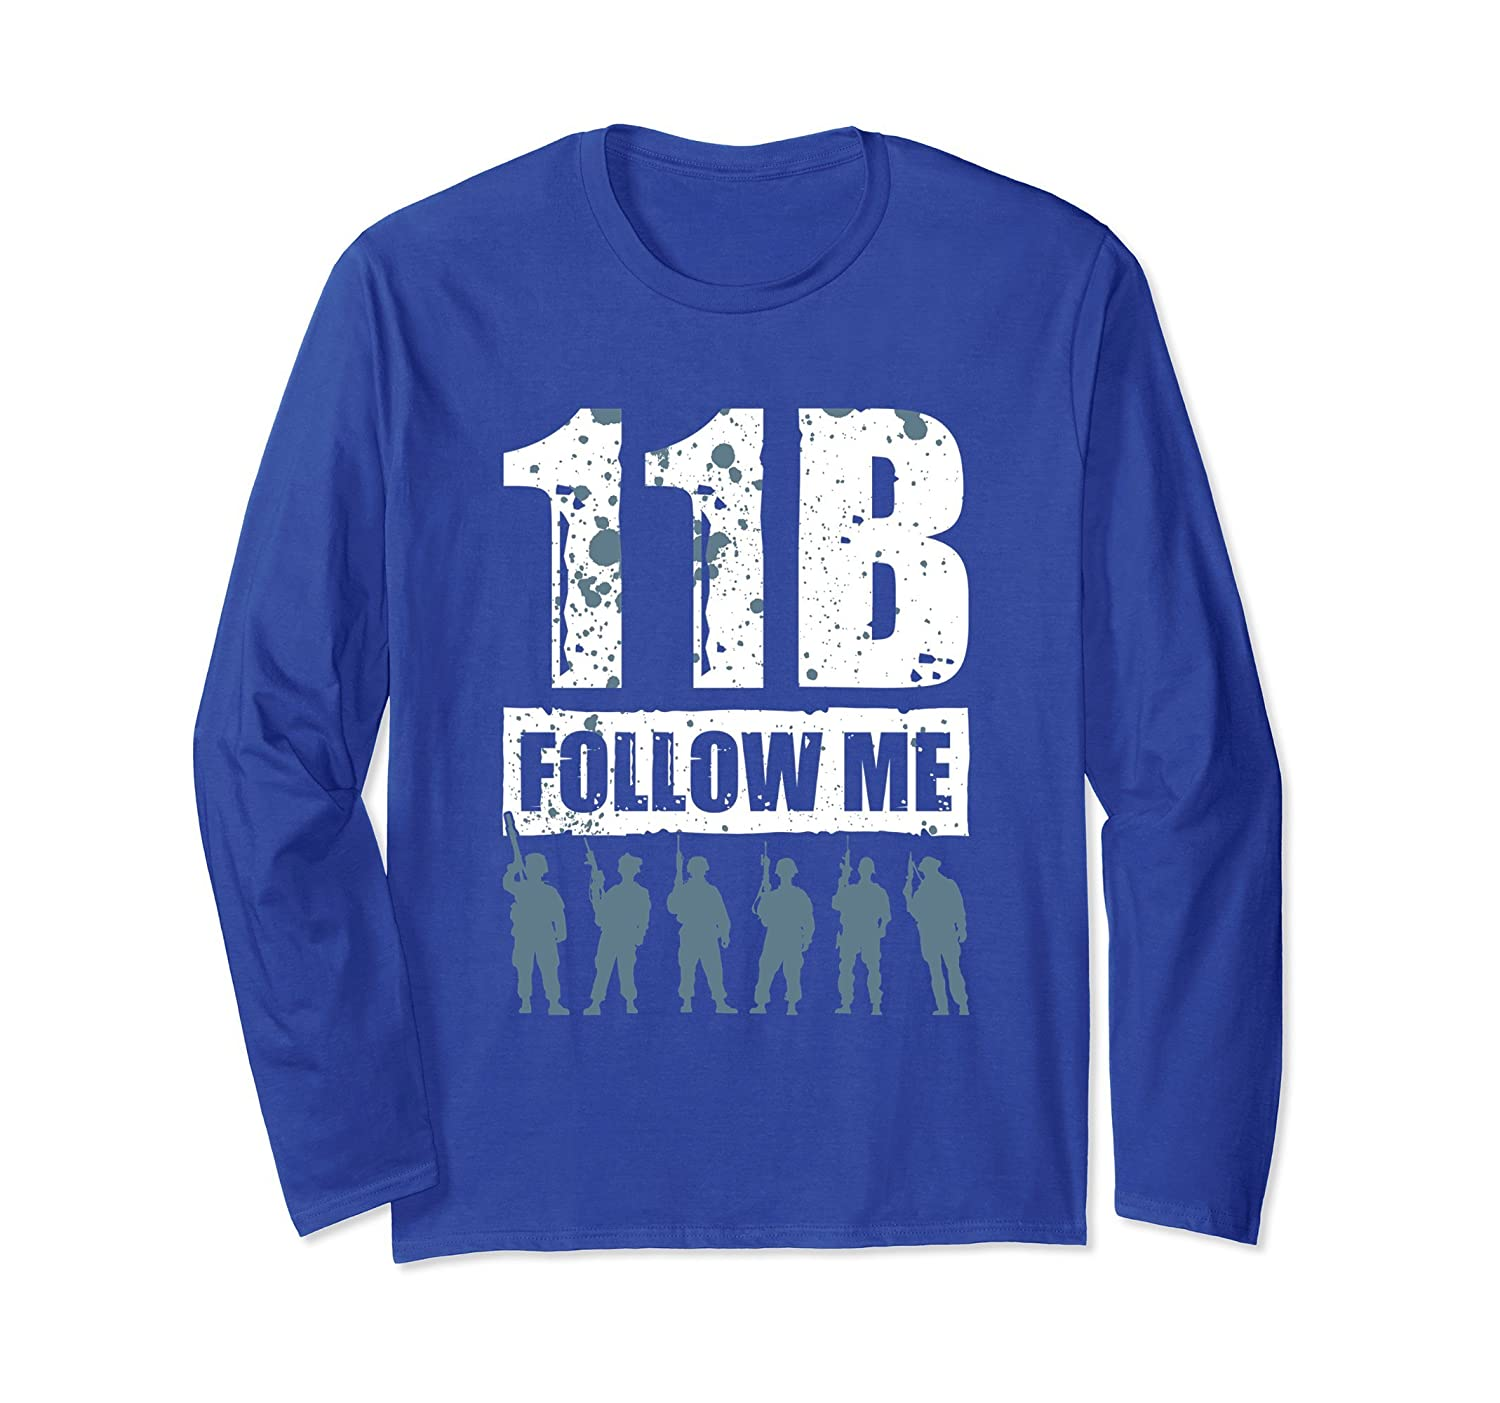 11 Bravo Follow Me Infantry T Shirt 21610-alottee gift